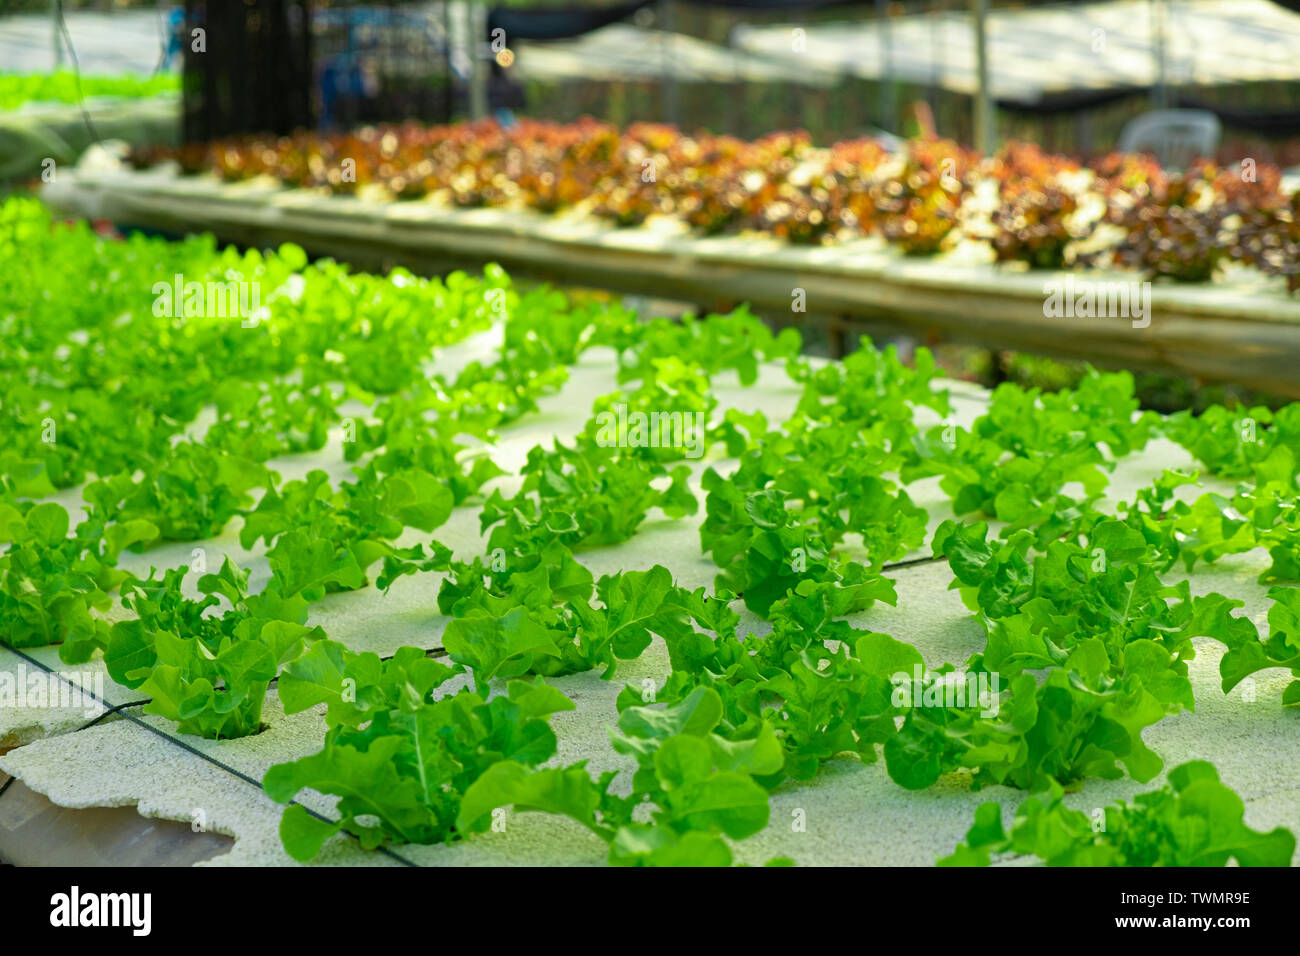 Vegetable green oak growing in hydroponic system flow water and fertilizer automation on planting plot, Eco organic modern smart farm 4.0 technology Stock Photo